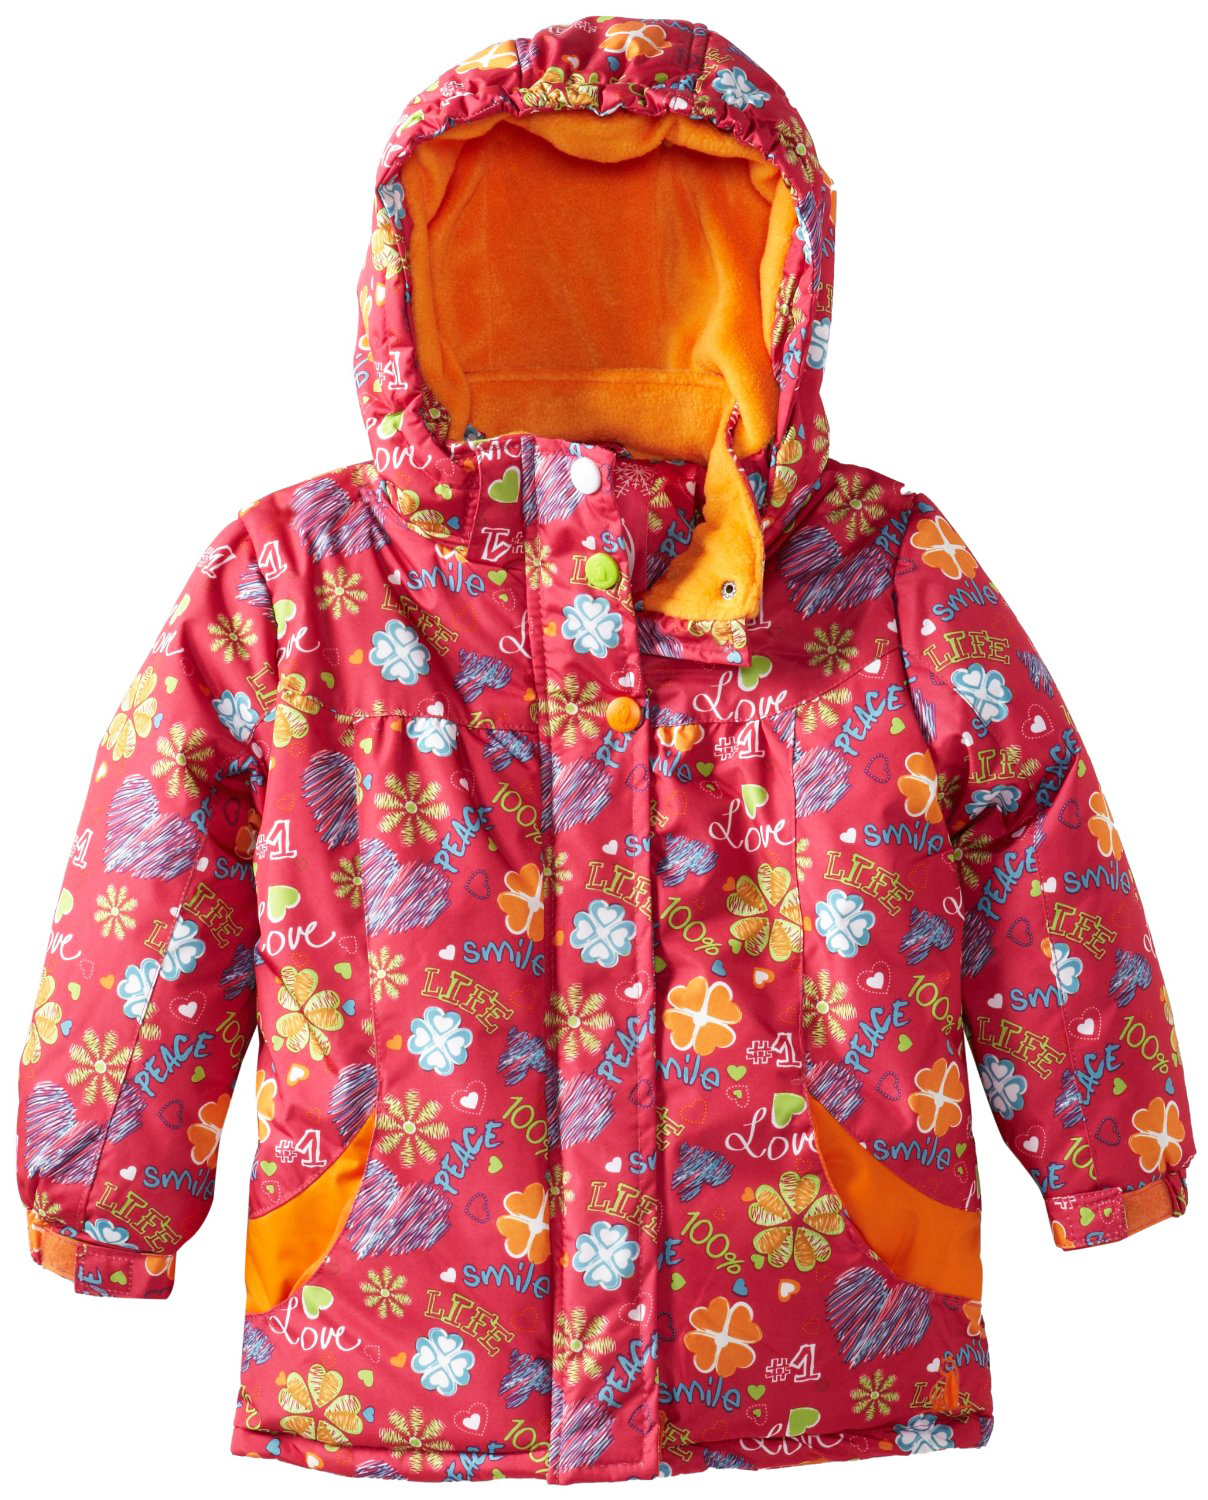 Rugged Bear Baby-Girls Infant Floral Love All Over Printed Ski Winter Jacket at Sears.com